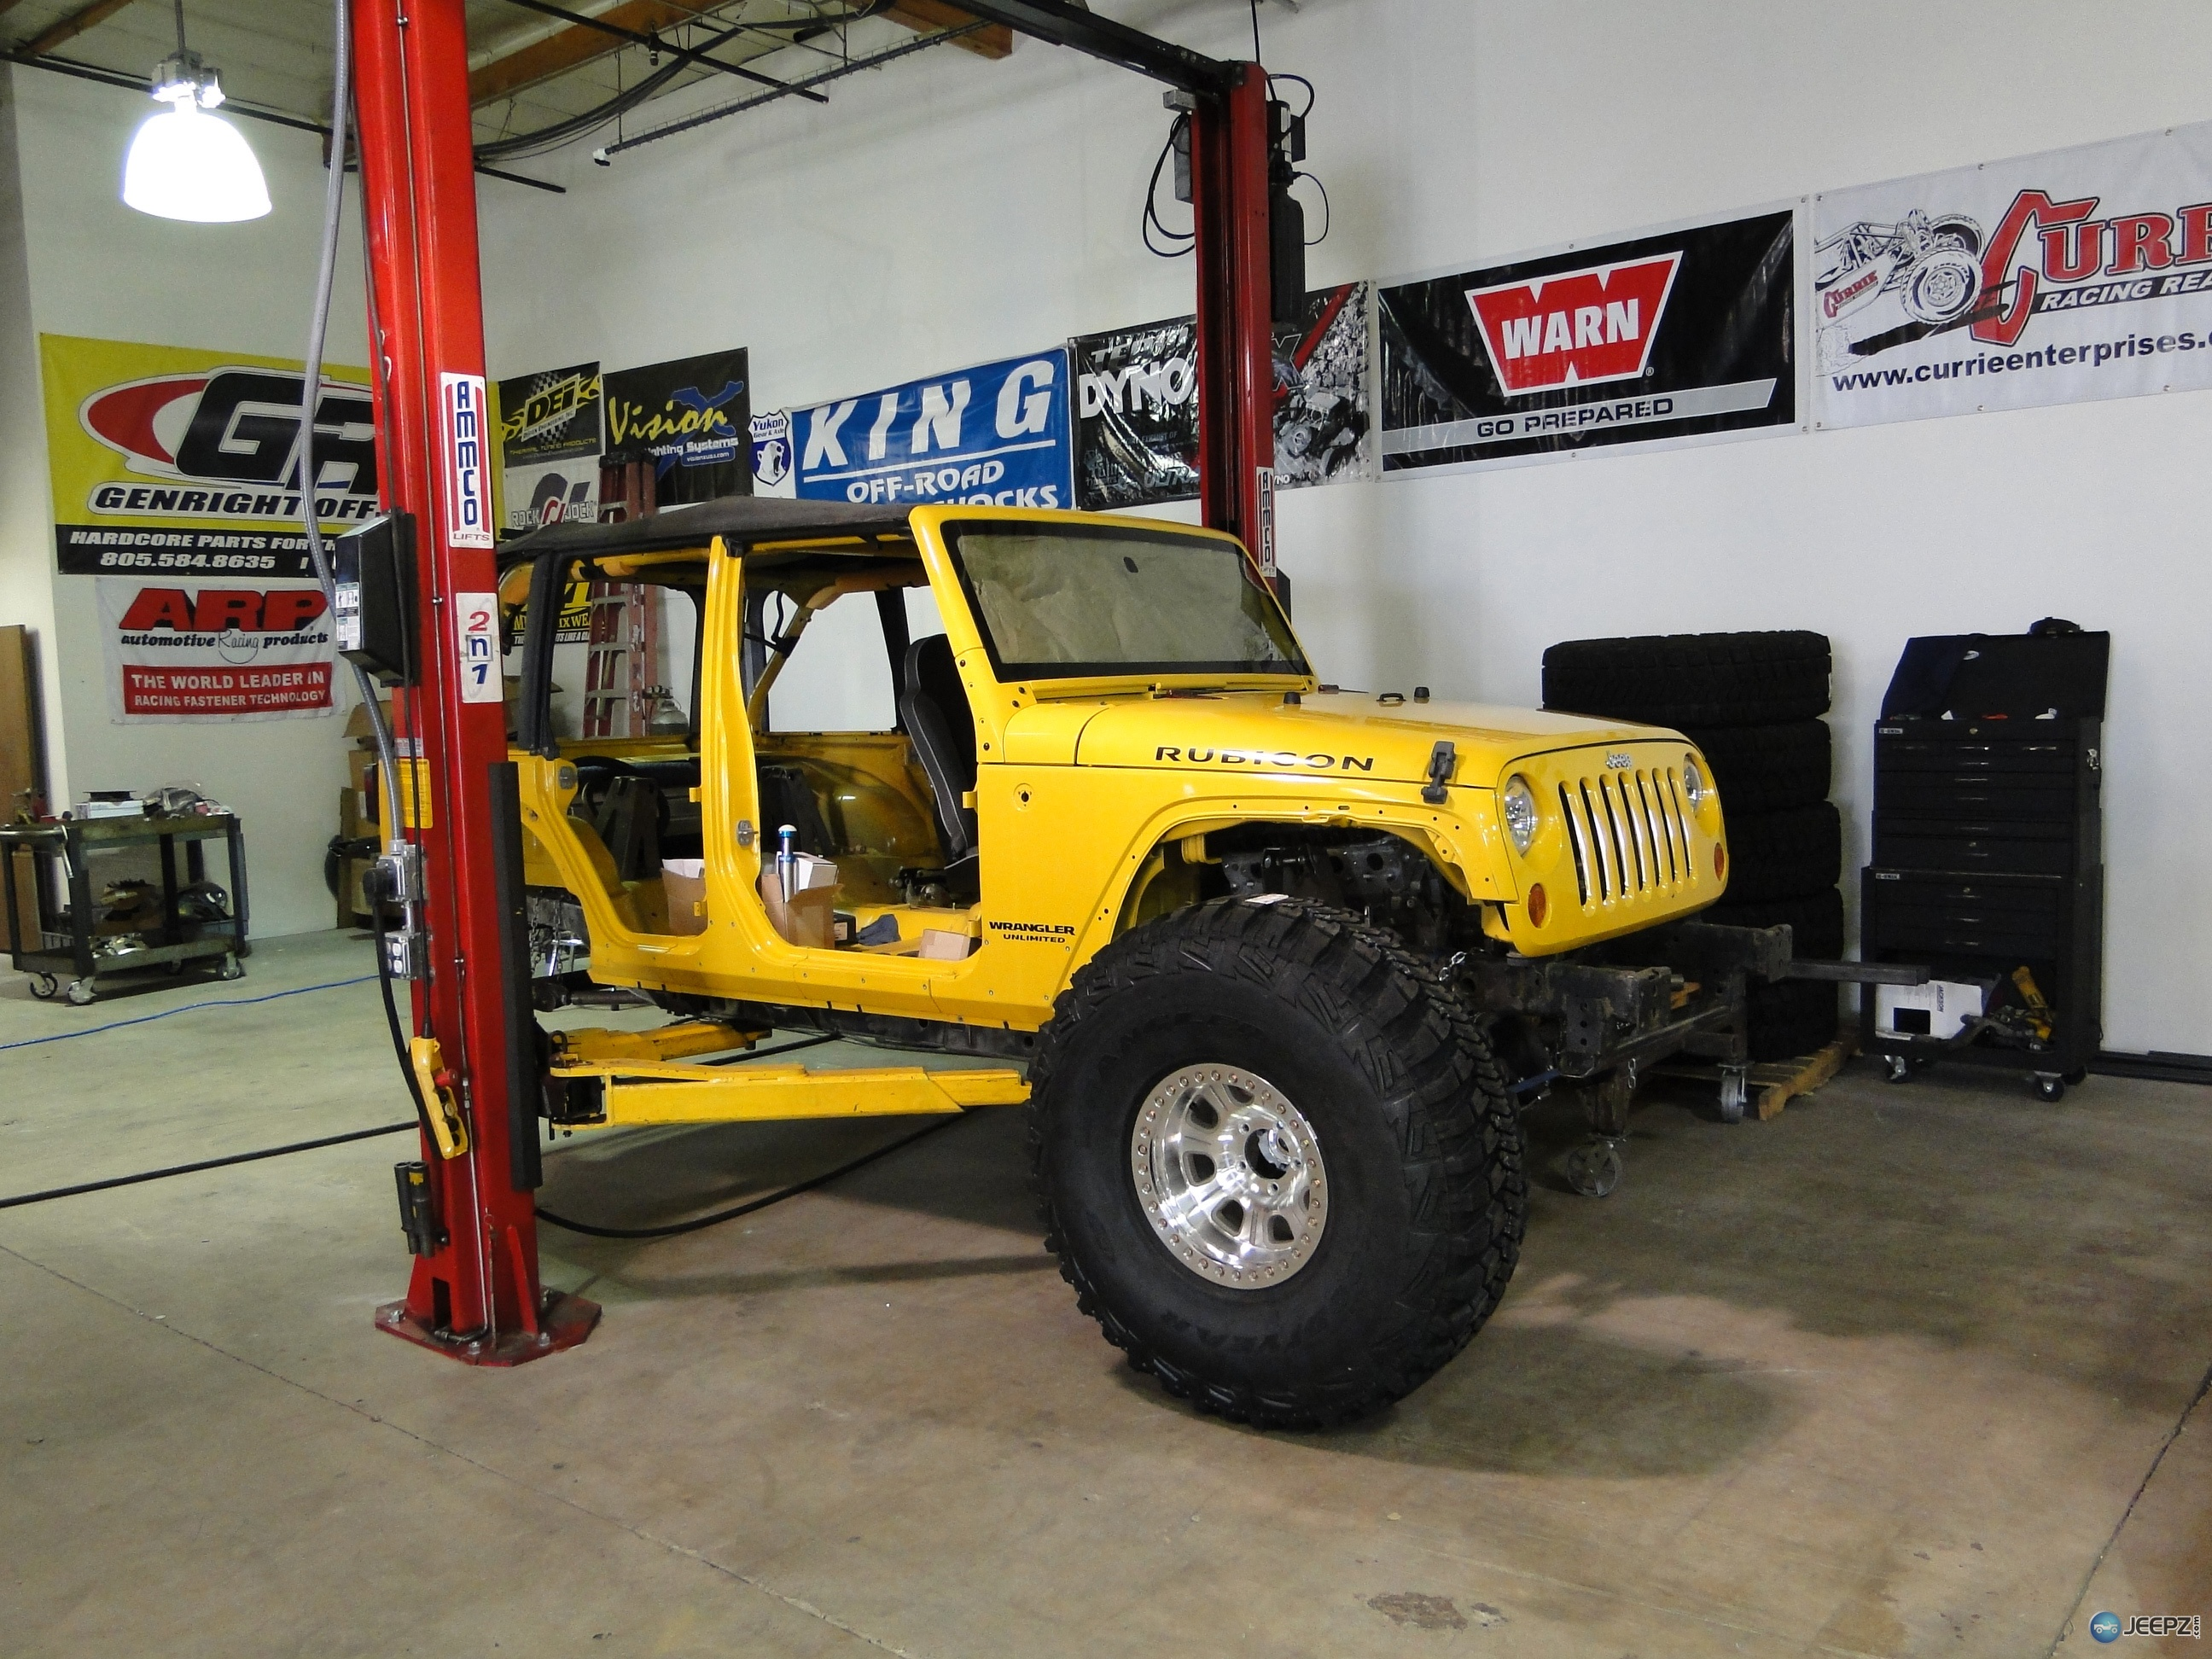 Genright Completely Guts A Yellow Jk For Major Overhaul